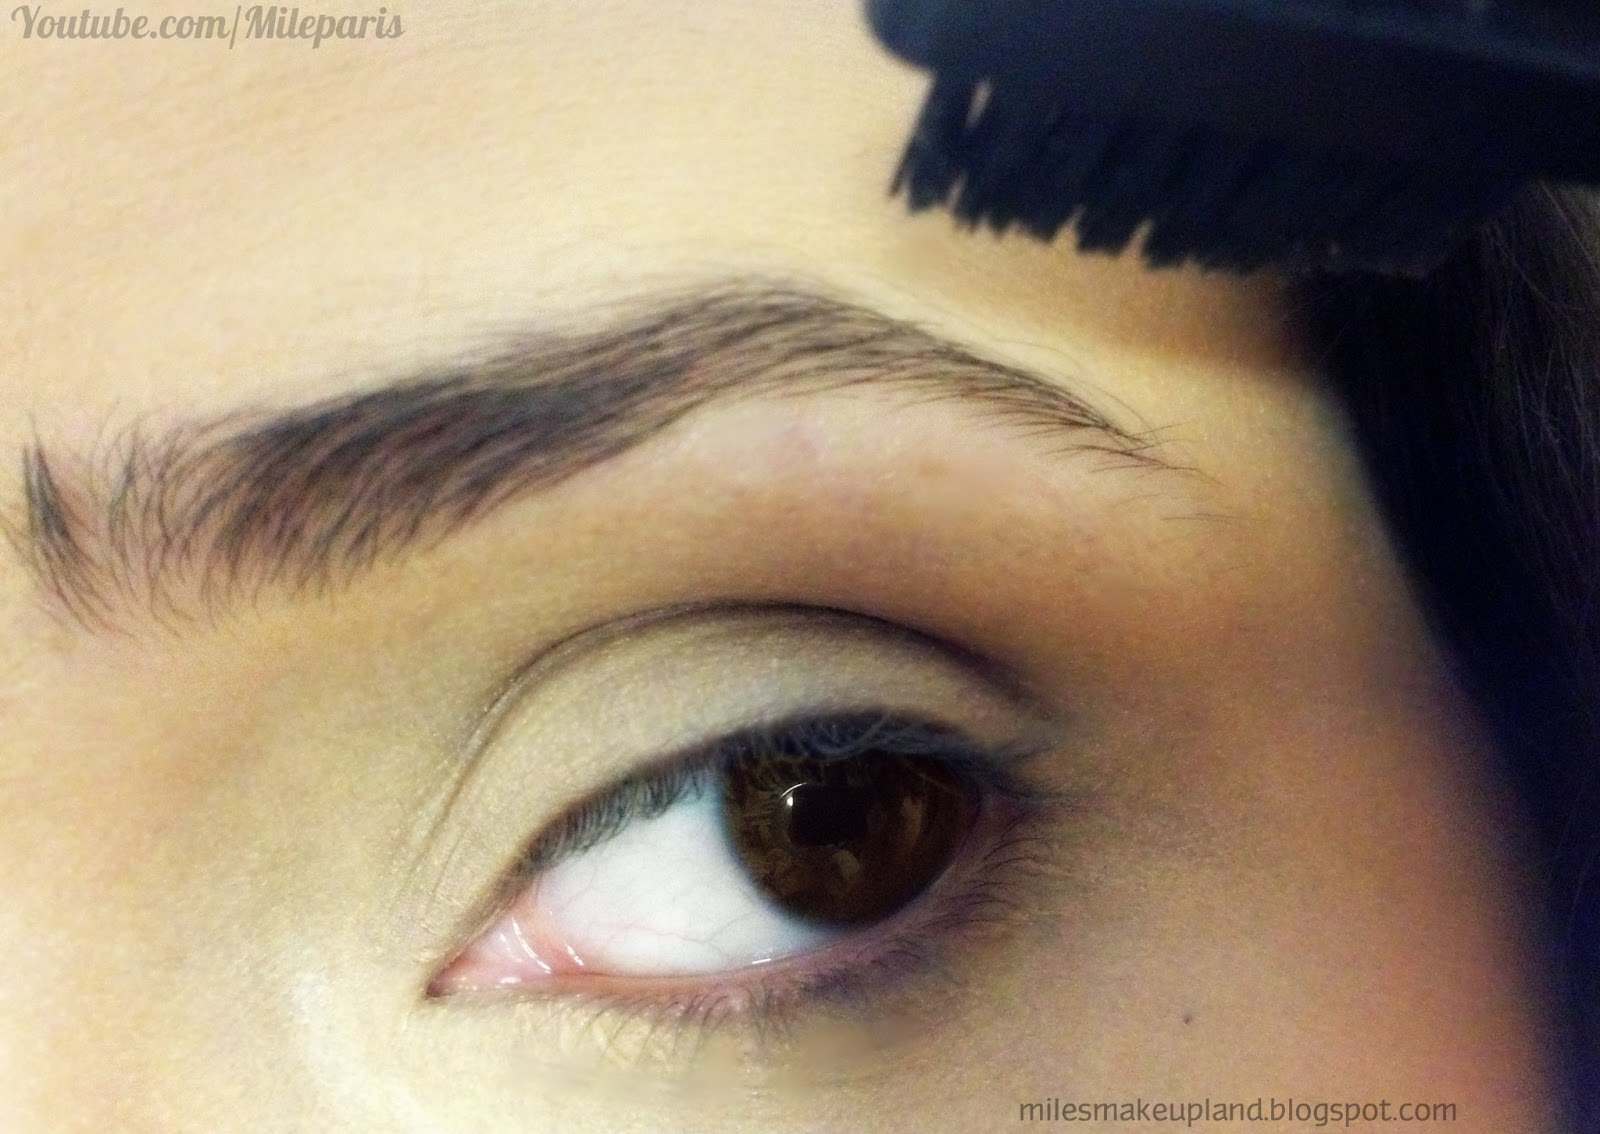 Miles Makeup Land How To 5 Easy Steps To Perfect Eyebrows Tutorial